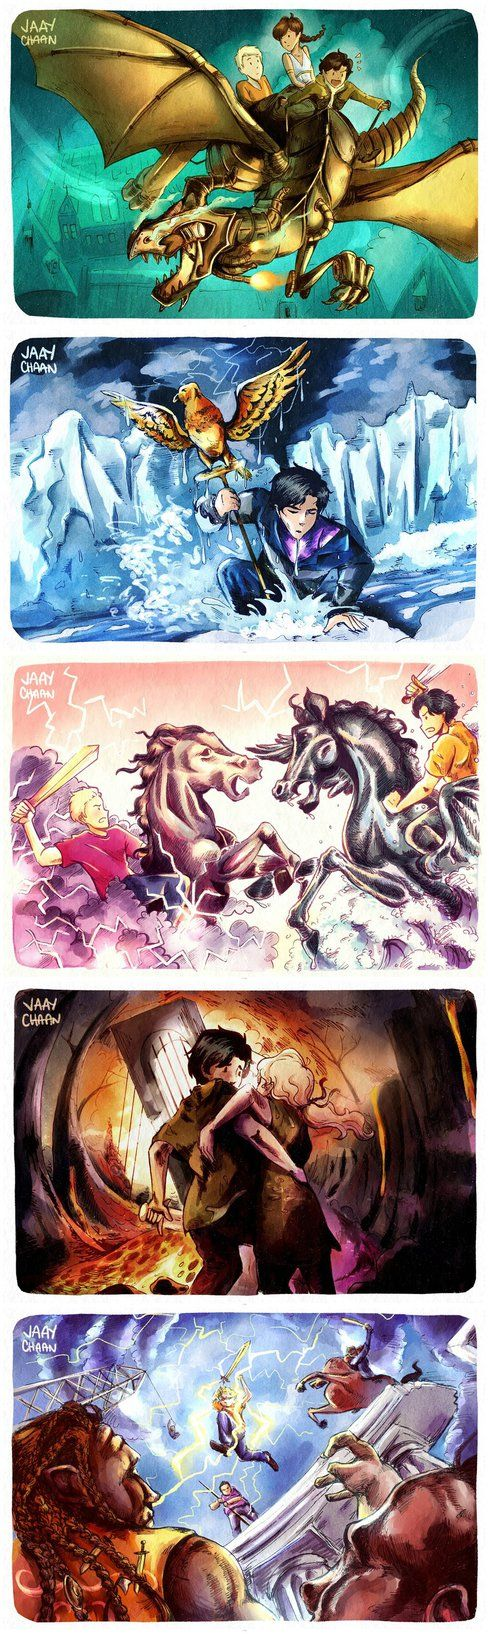 -redraw- All HOO Book Covers by jaaychaan.deviantart.com on @DeviantArt